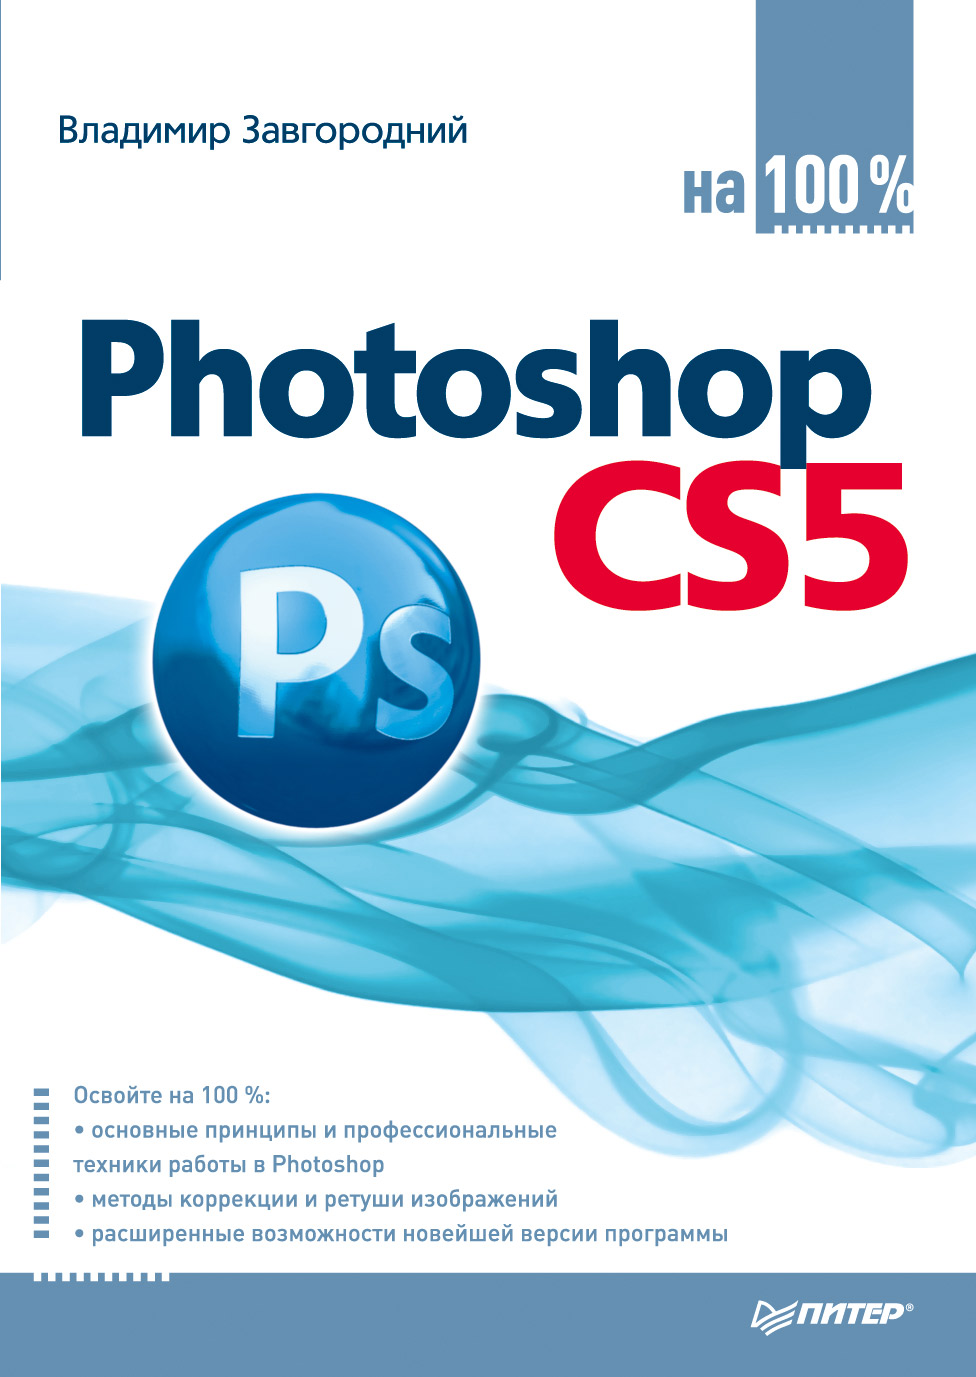 Владимир Завгородний Photoshop CS5 на 100%